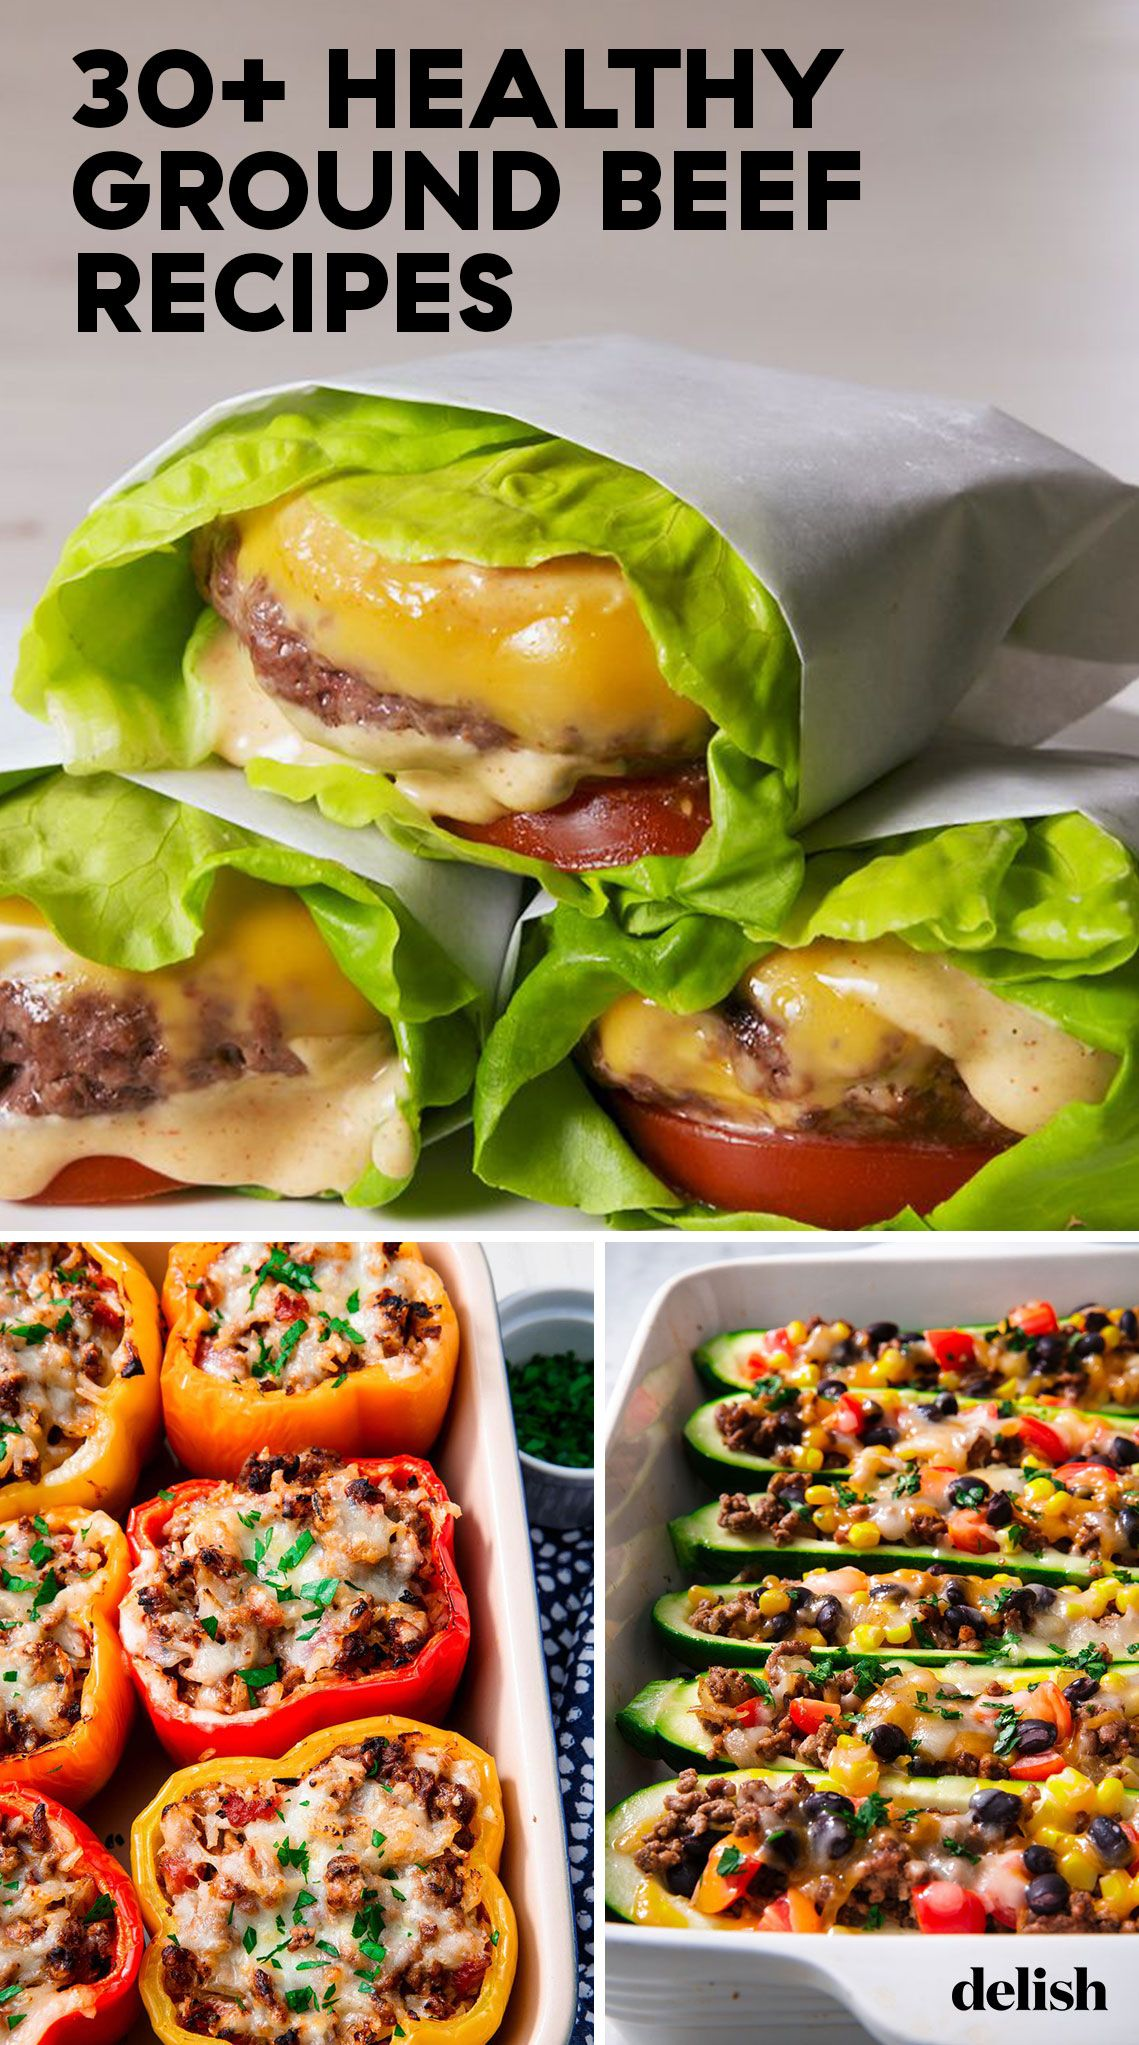 30+ Healthy Ground Beef Recipes images